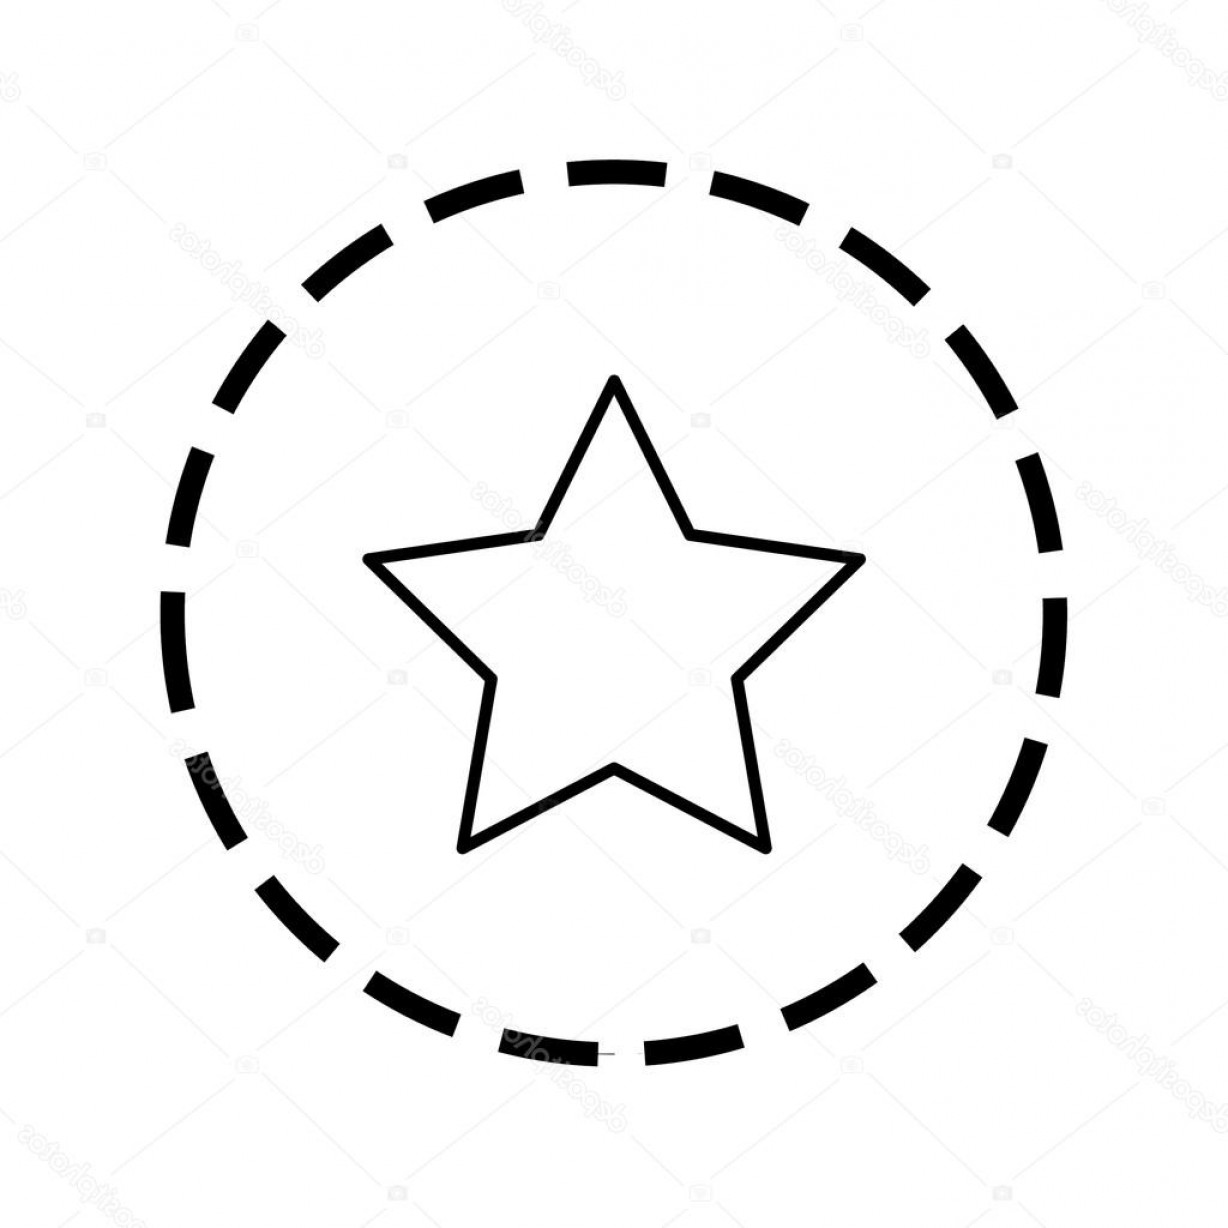 5 Point Star Vector Art: Stock Illustration Icon Outline Within A Dotted